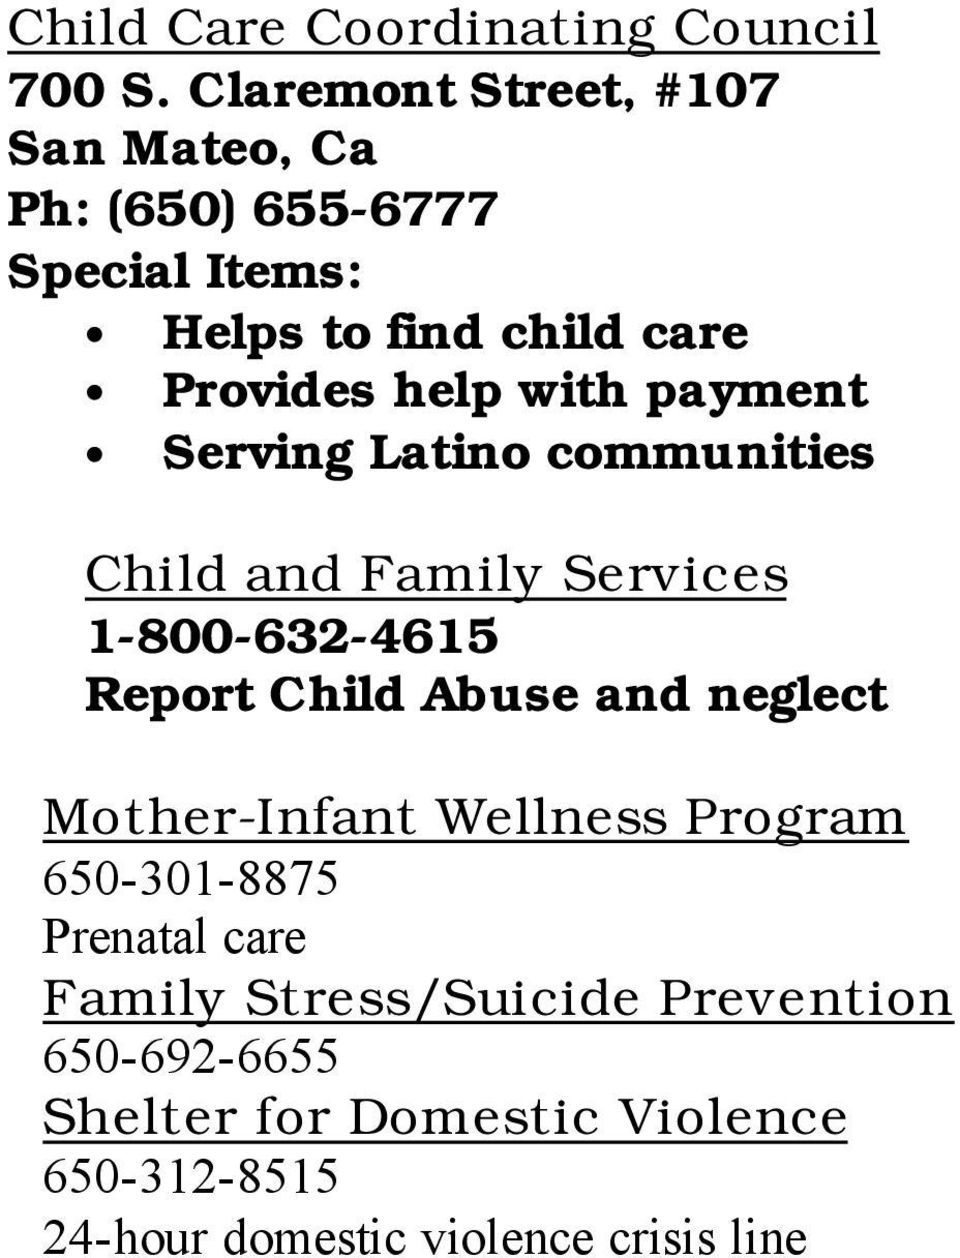 Serving Latino communities Child and Family Services 1-800-632-4615 Report Child Abuse and neglect